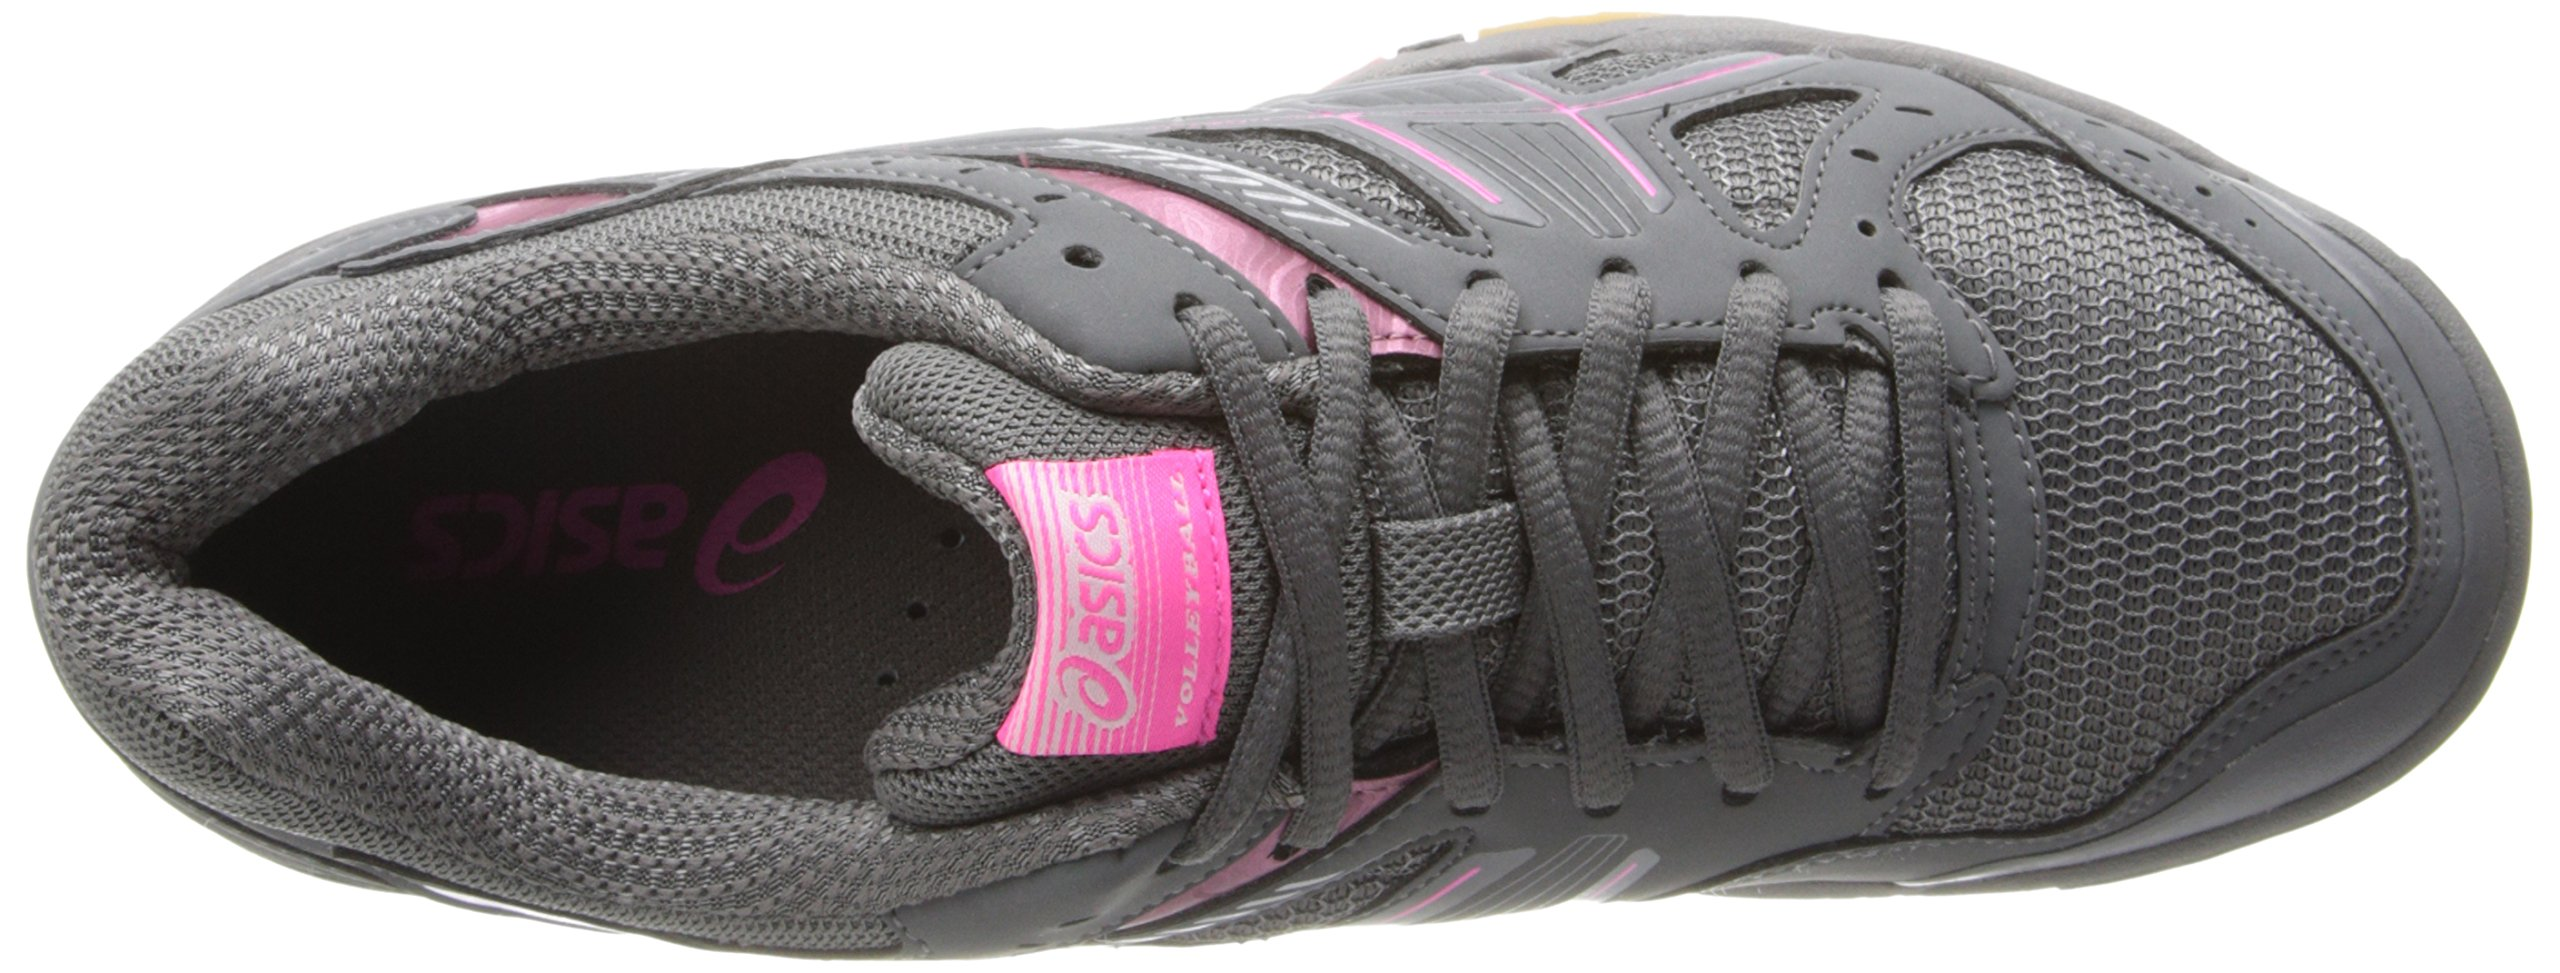 ASICS Women's Gel 1150V Volley Ball Shoe,Smoke/Knock Out Pink/Silver,8 M US by ASICS (Image #8)